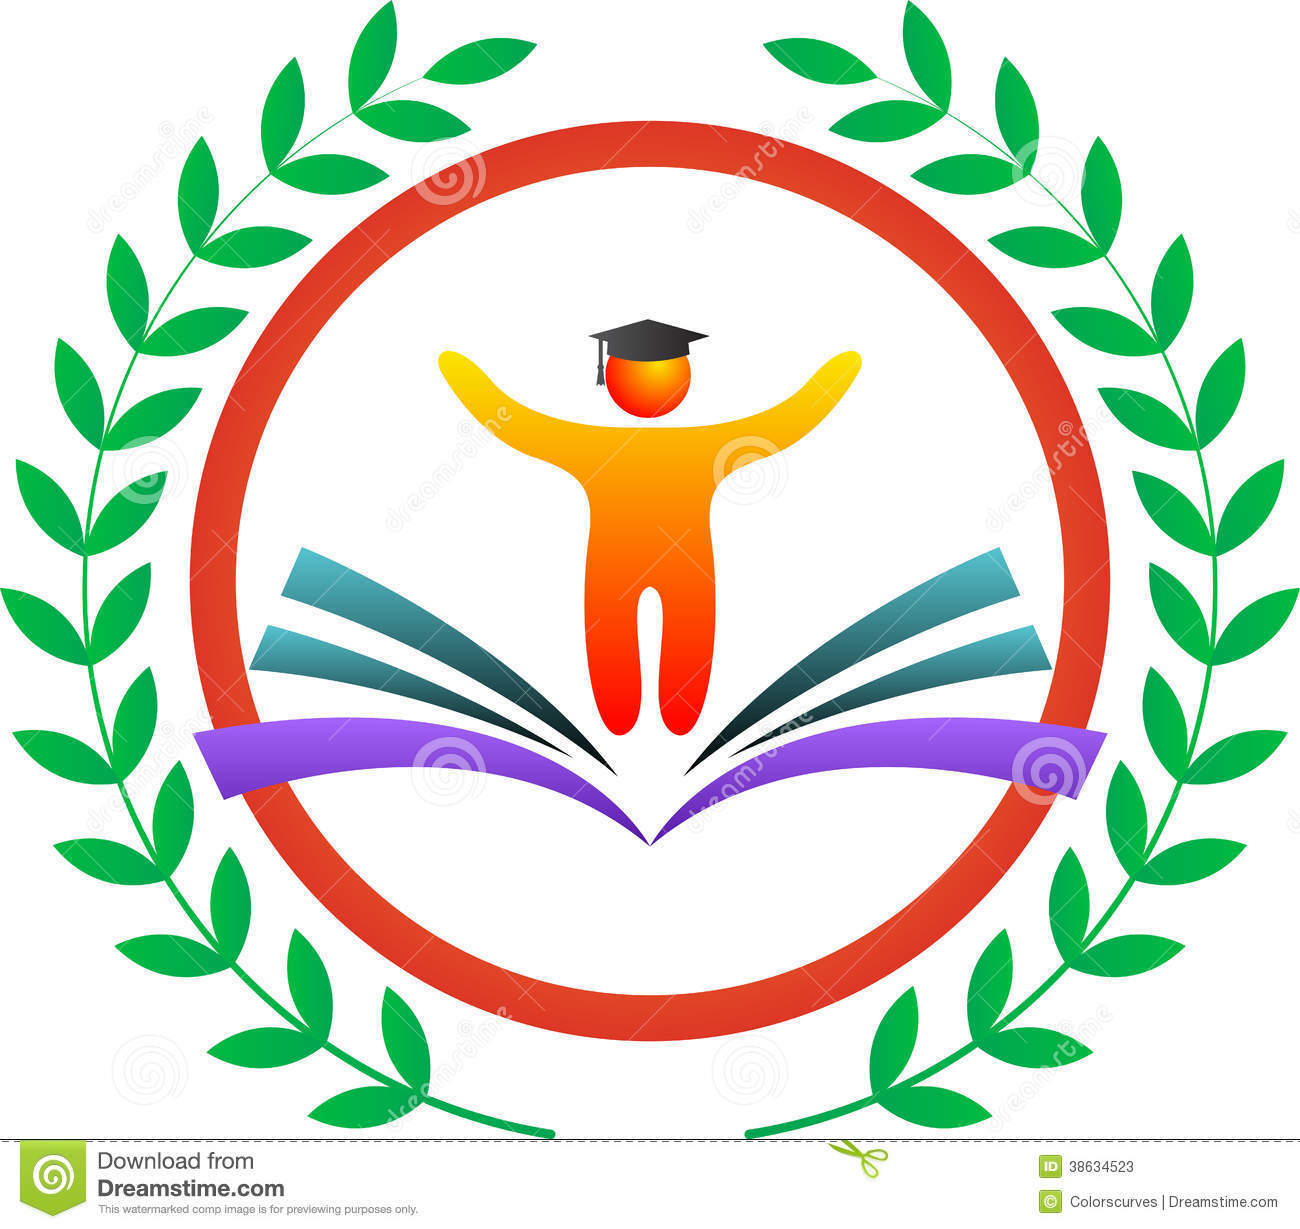 vector drawing represents education logo design.